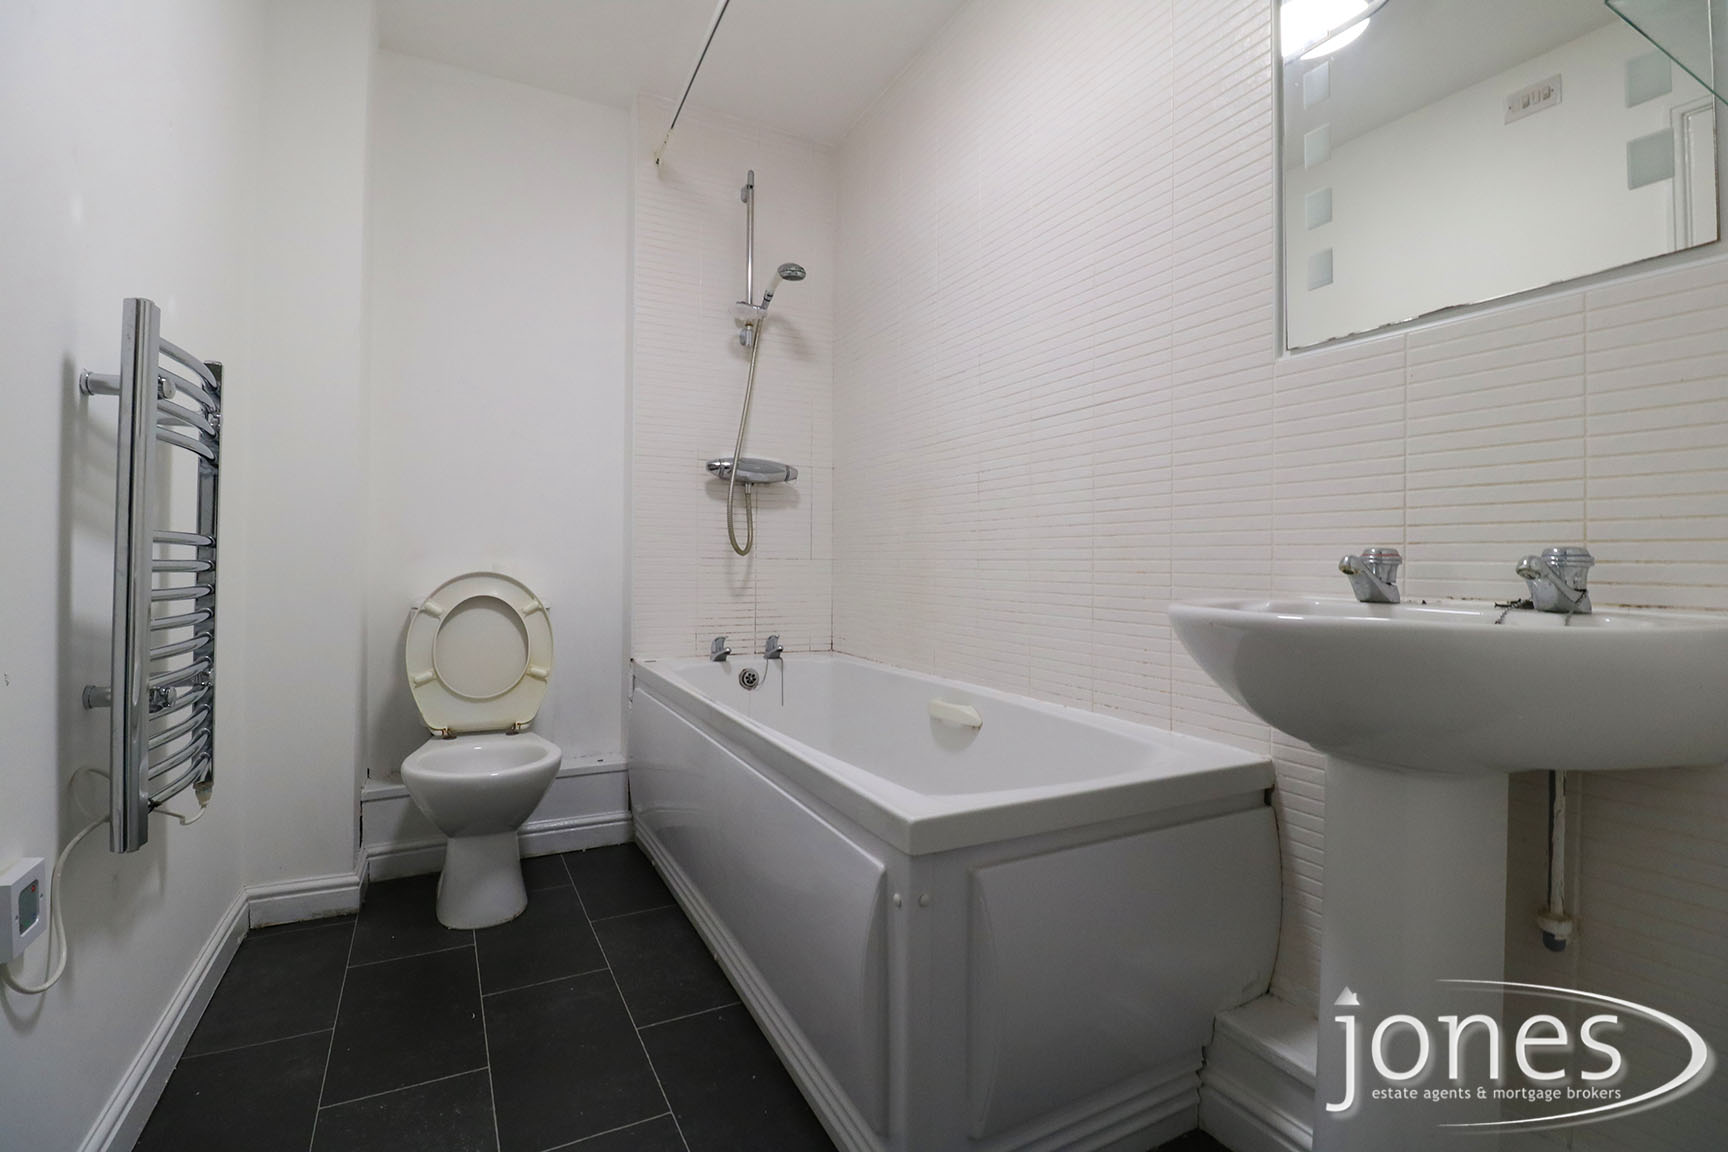 Home for Sale Let - Photo 06 Earls Court, Norton, Stockton on Tees TS20 2NP